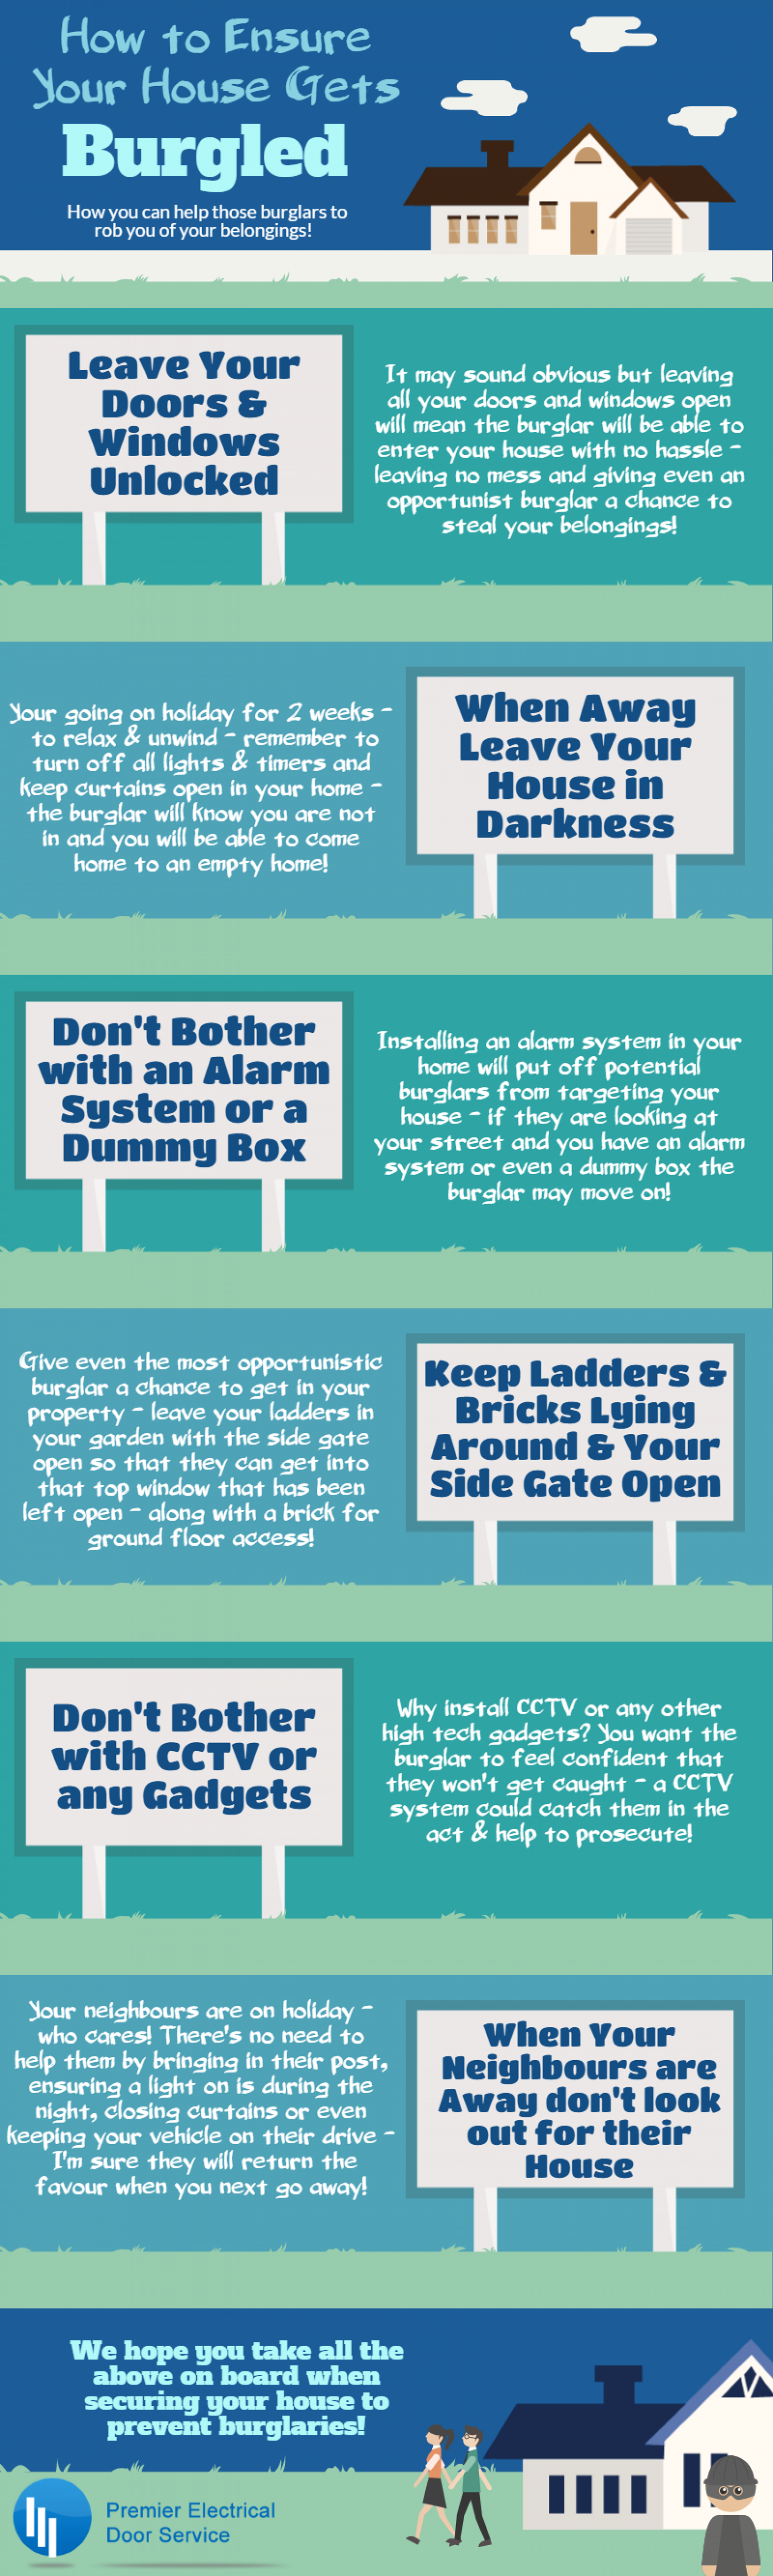 How To Ensure Your House Gets Burgled Infographic